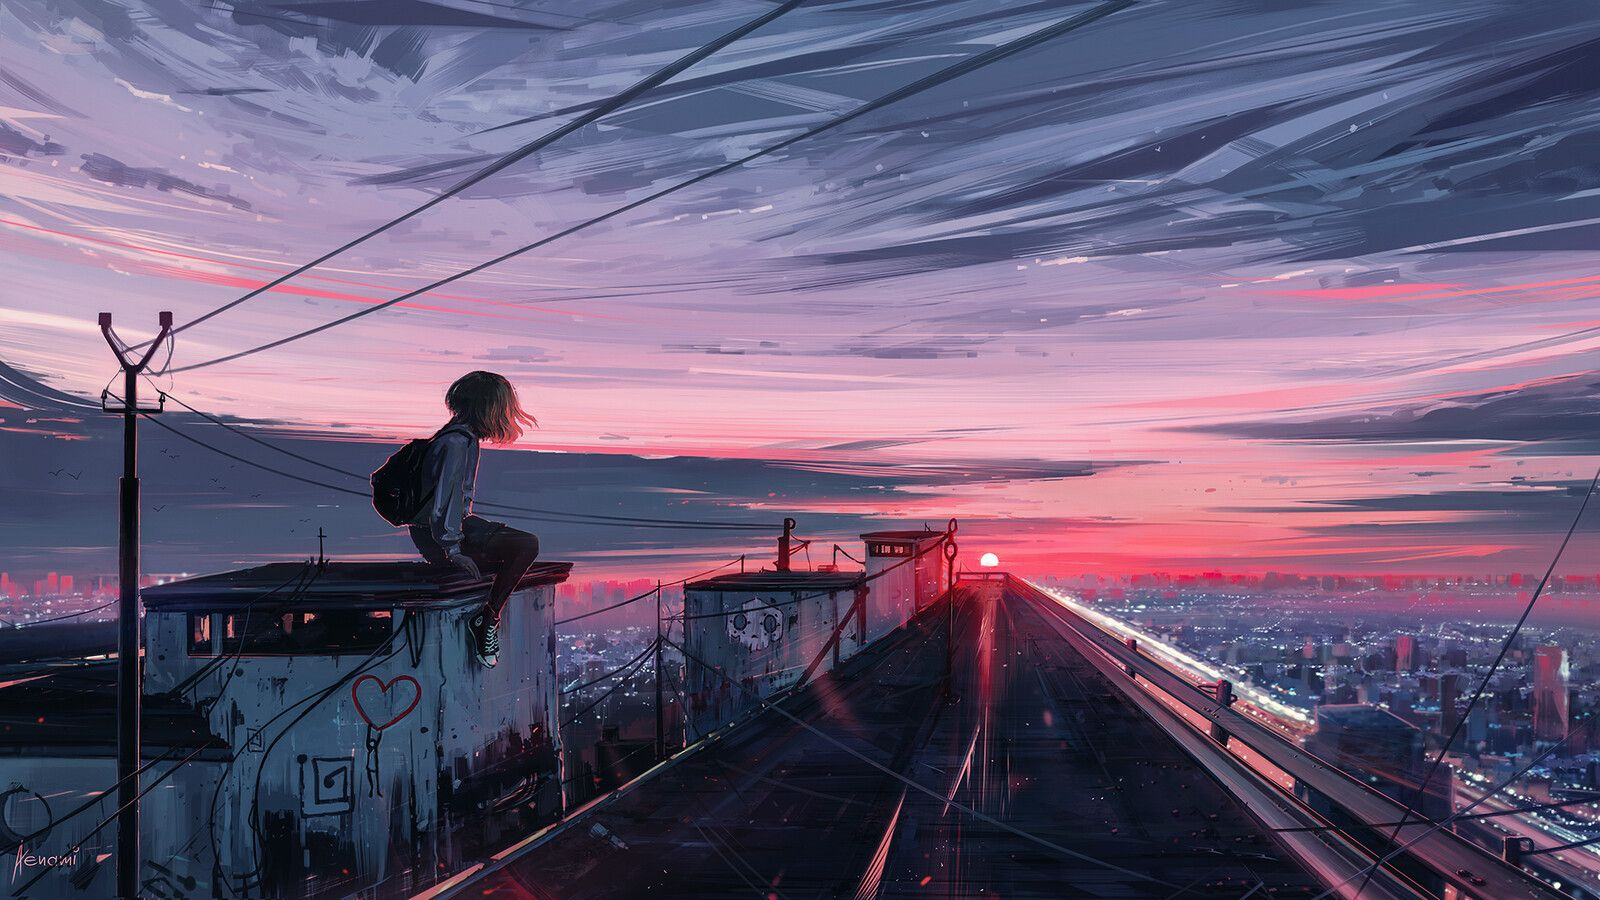 Someday Alena Aenami On Artstation At Https Www Artstation Com Artwork Ya4wab Anime Scenery Anime Scenery Wallpaper Scenery Wallpaper